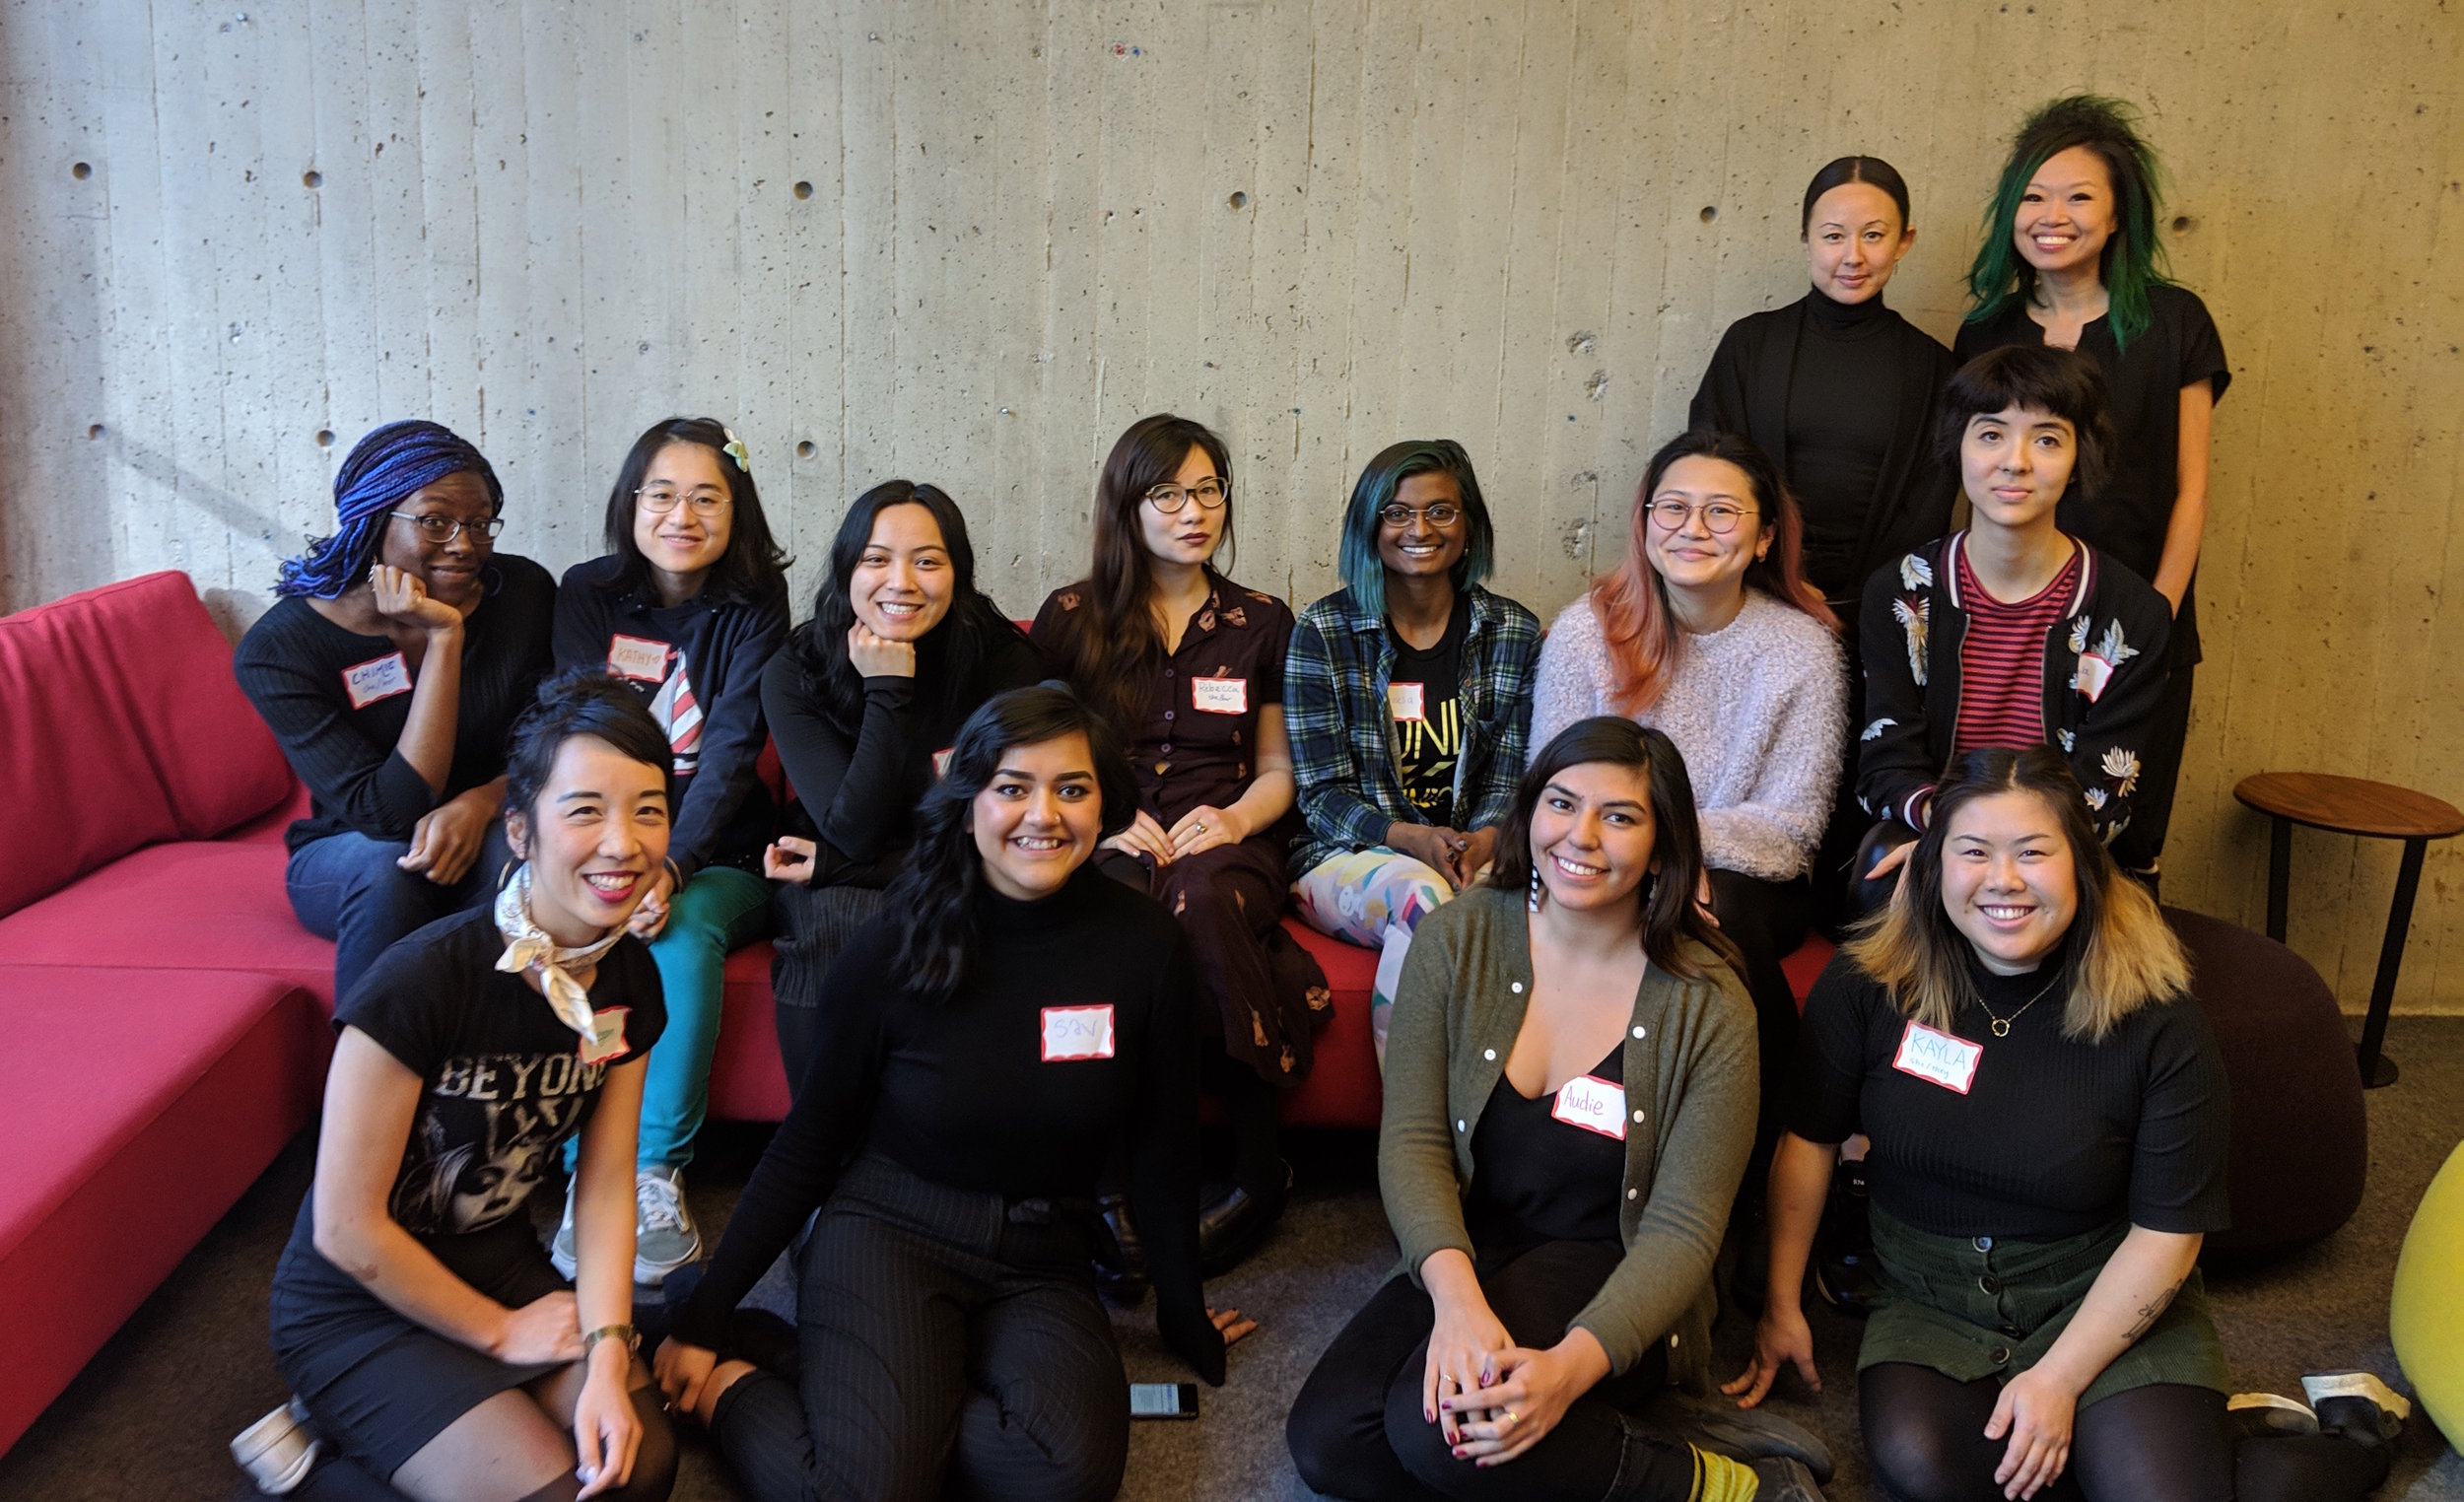 The Winter 2019 cohort with Natasha Neale and Jen Sungshine (back row).